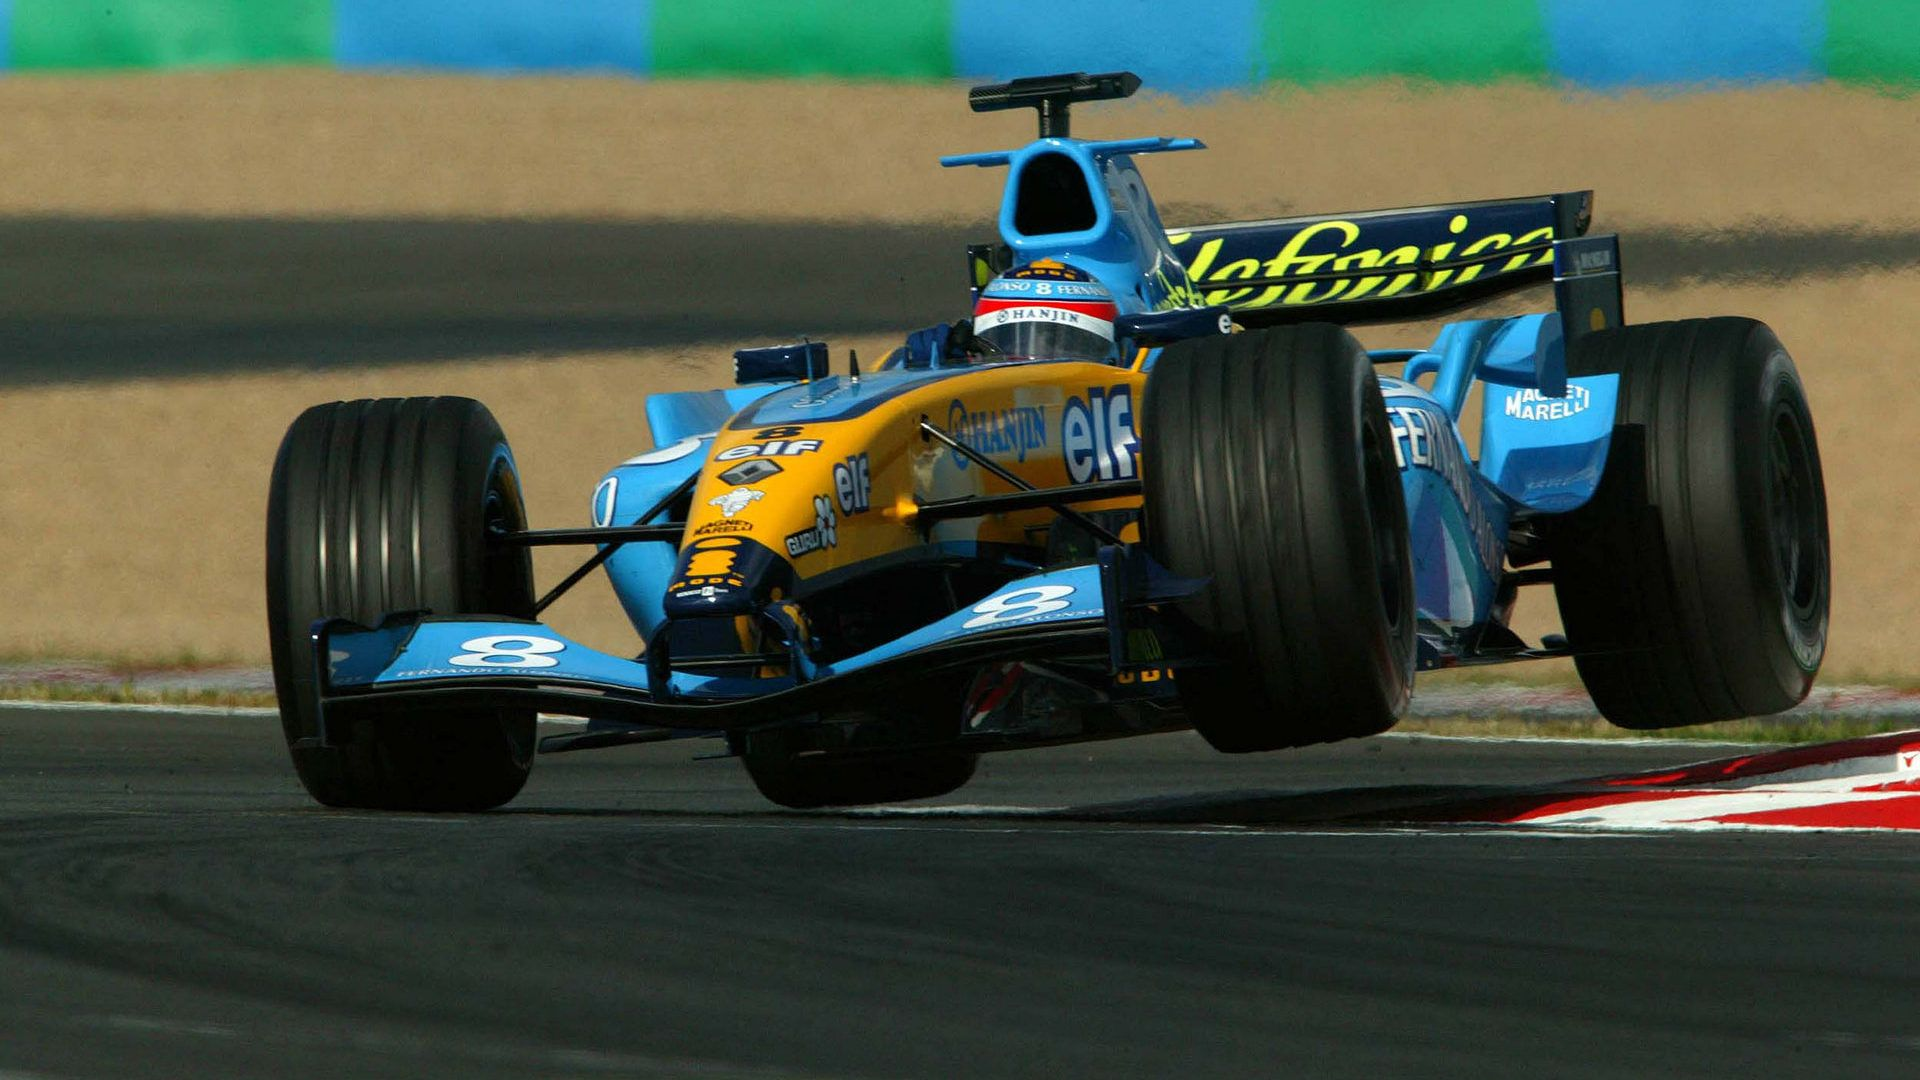 F1 racing cars hd wallpapers